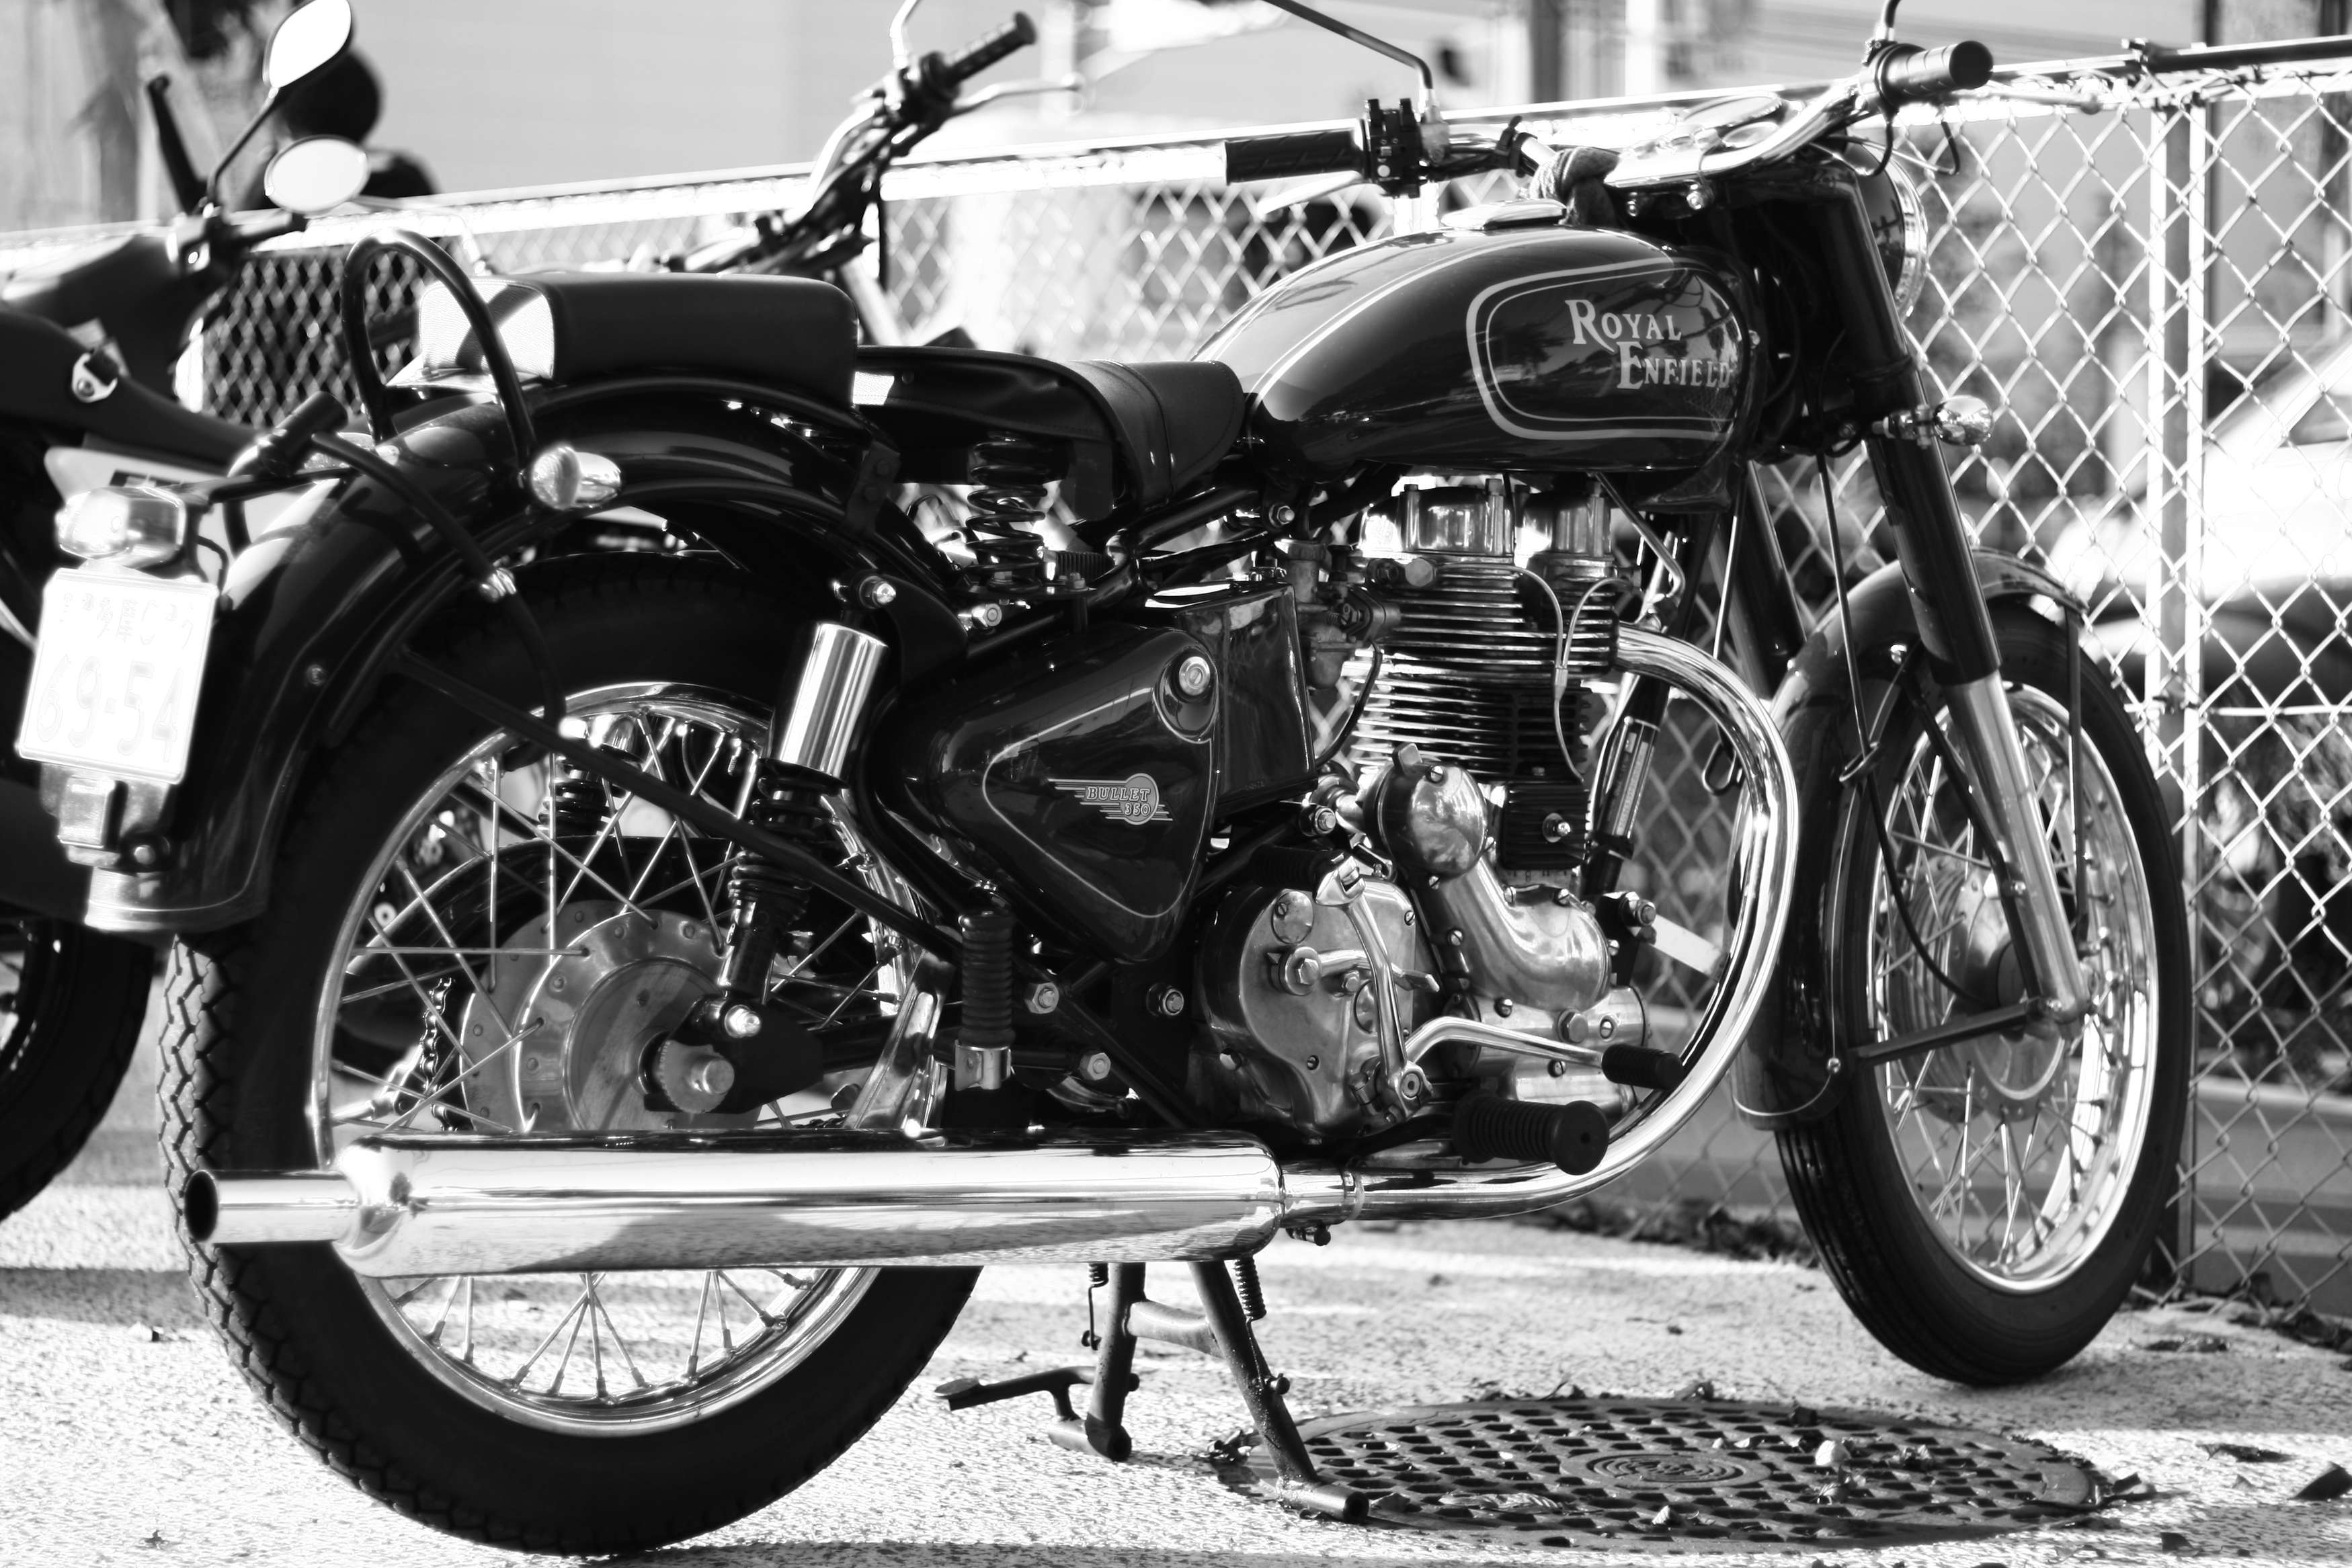 Royal Enfield 350 #7698773